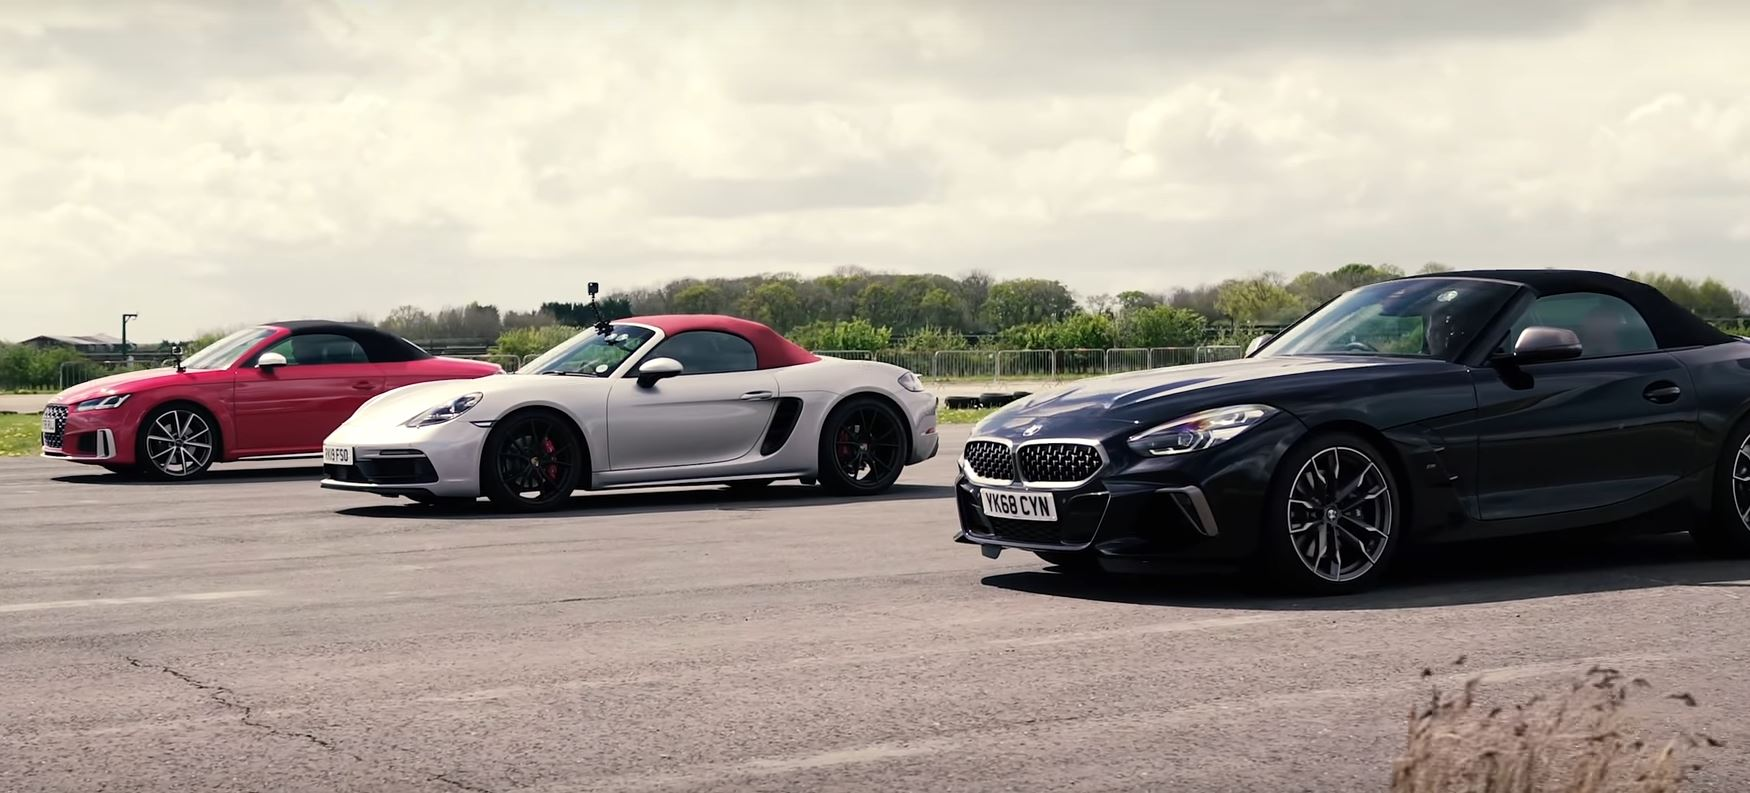 BMW Z4 M40i Drag Race Against Audi TTS, Boxster GTS Ends In